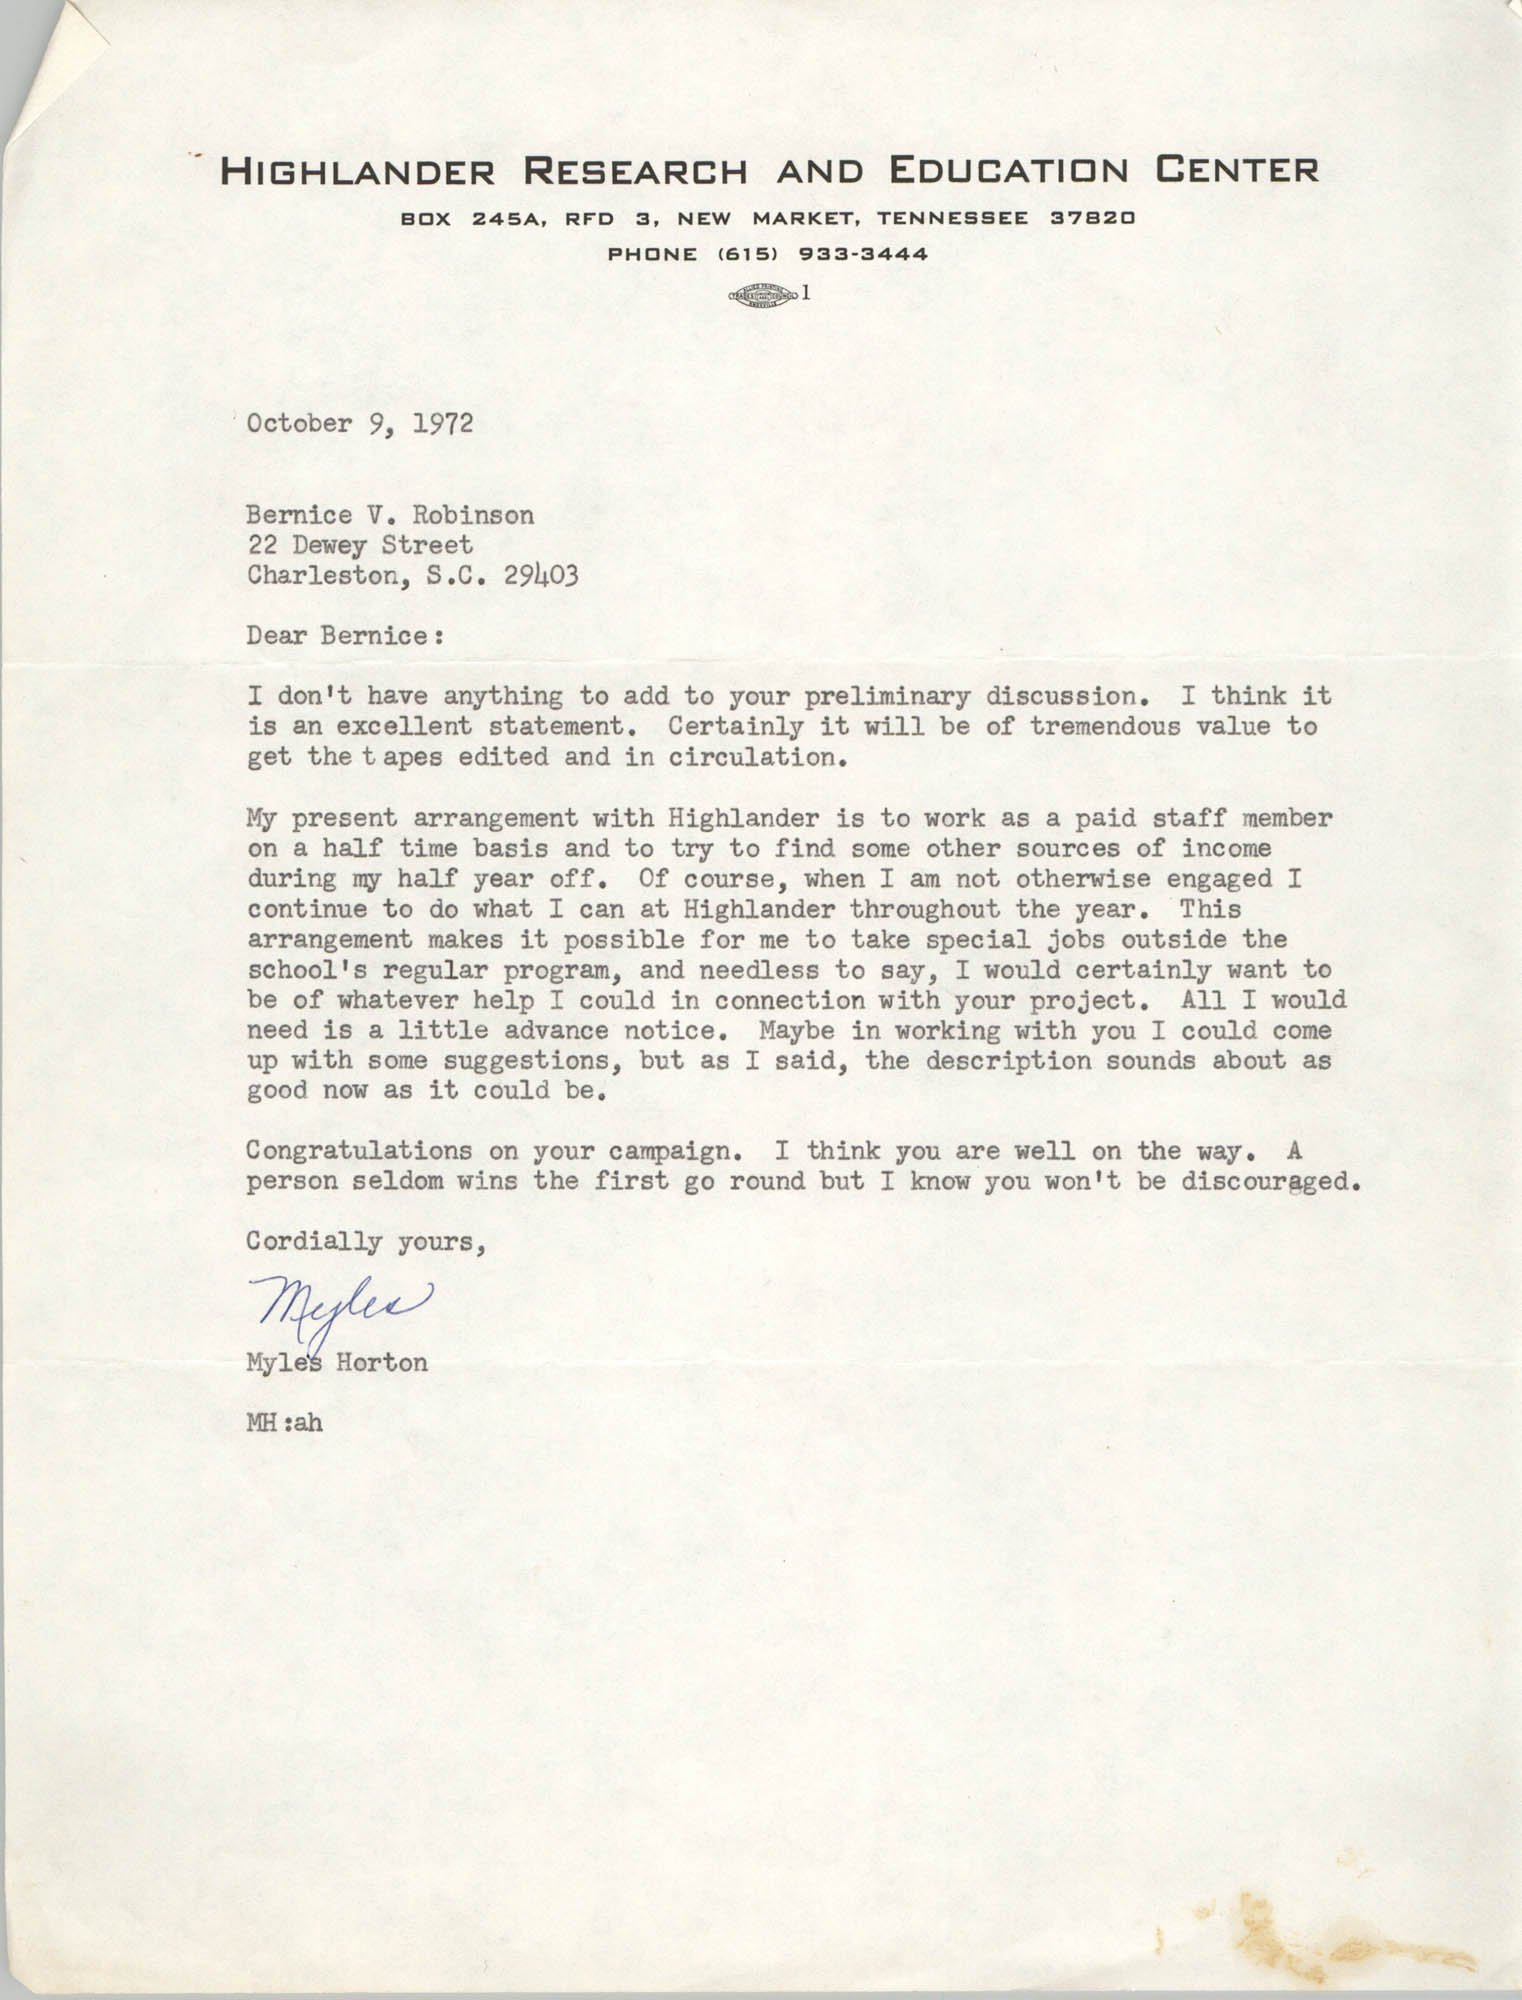 Letter from Myles Horton to Bernice Robinson, October 9, 1972